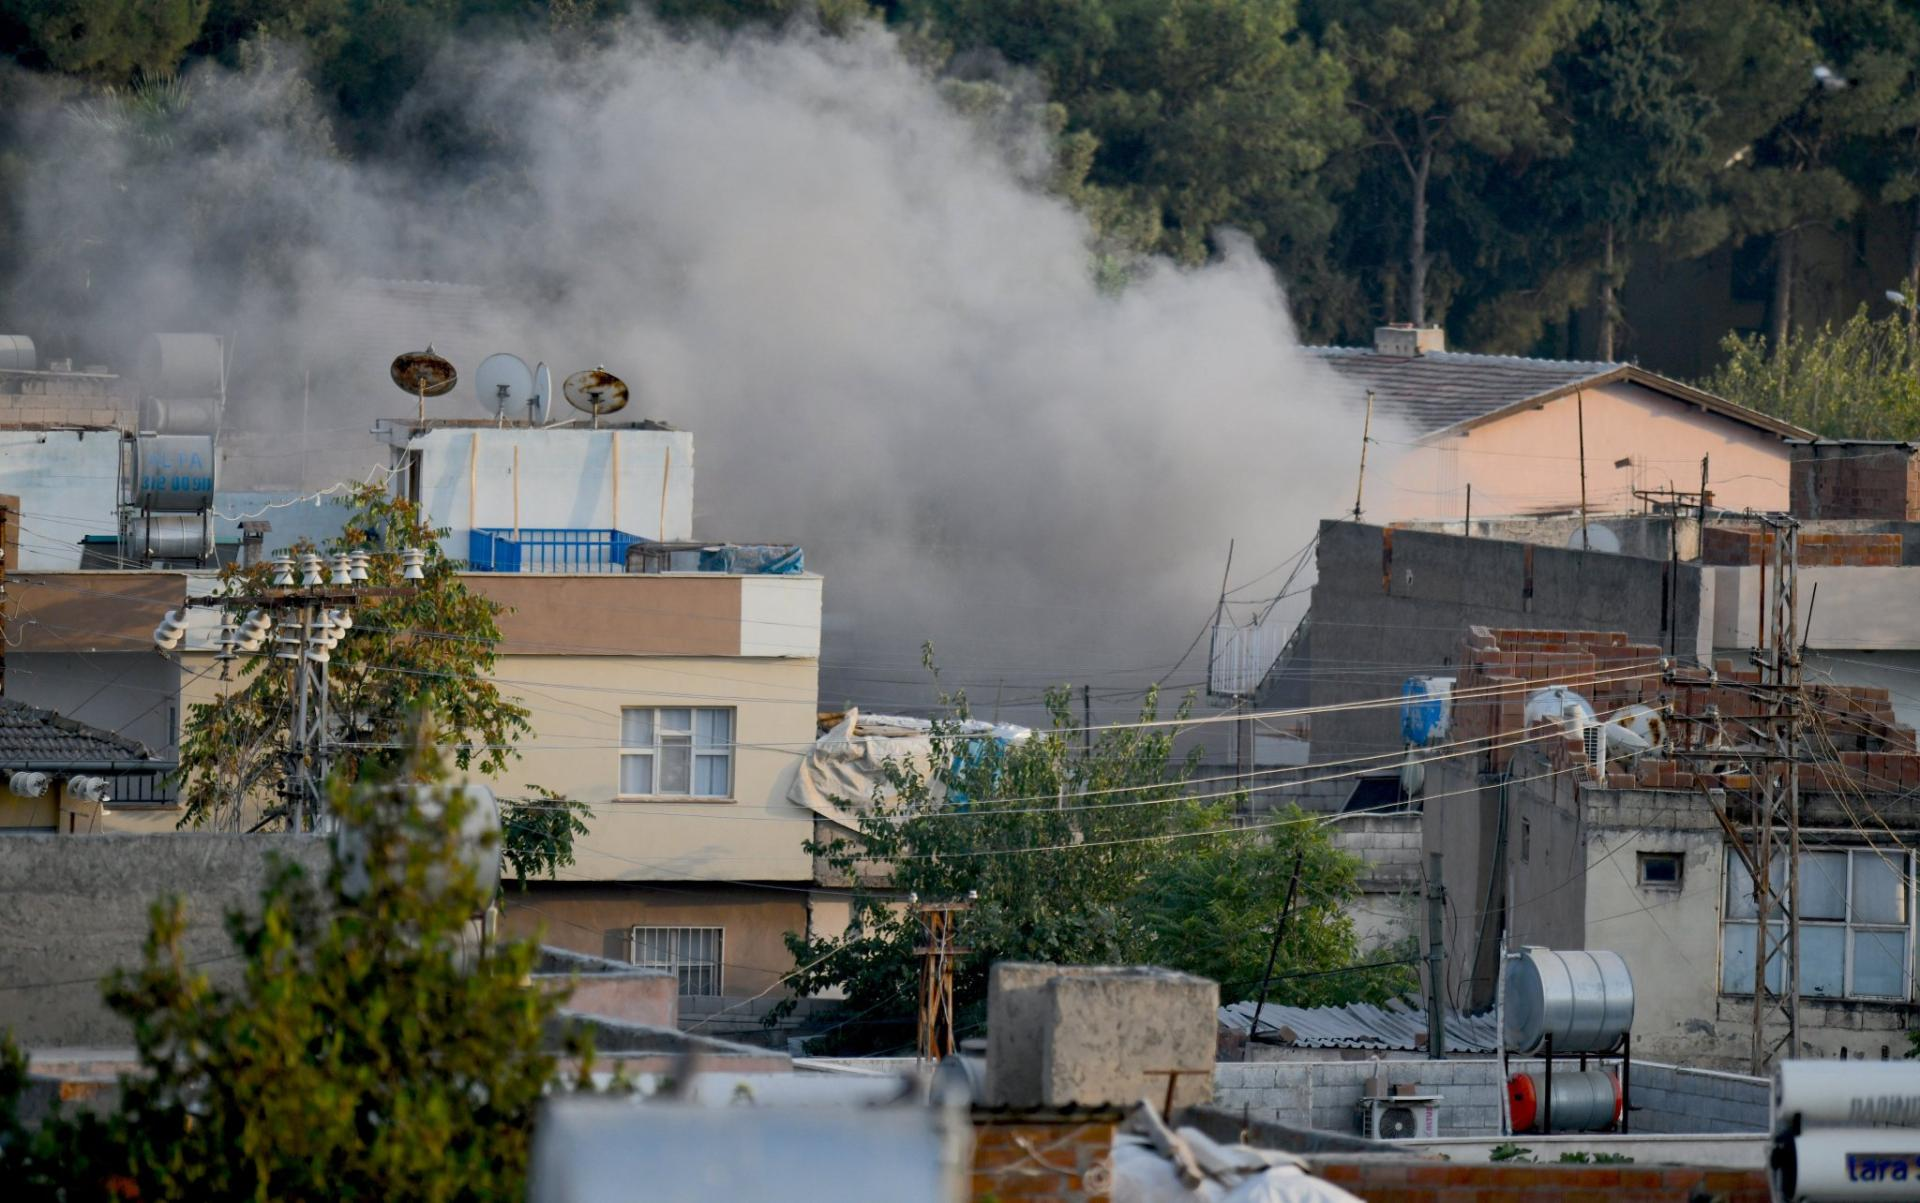 Turkey's territory undergoes rocket shelling from Syria - media (PHOTO)